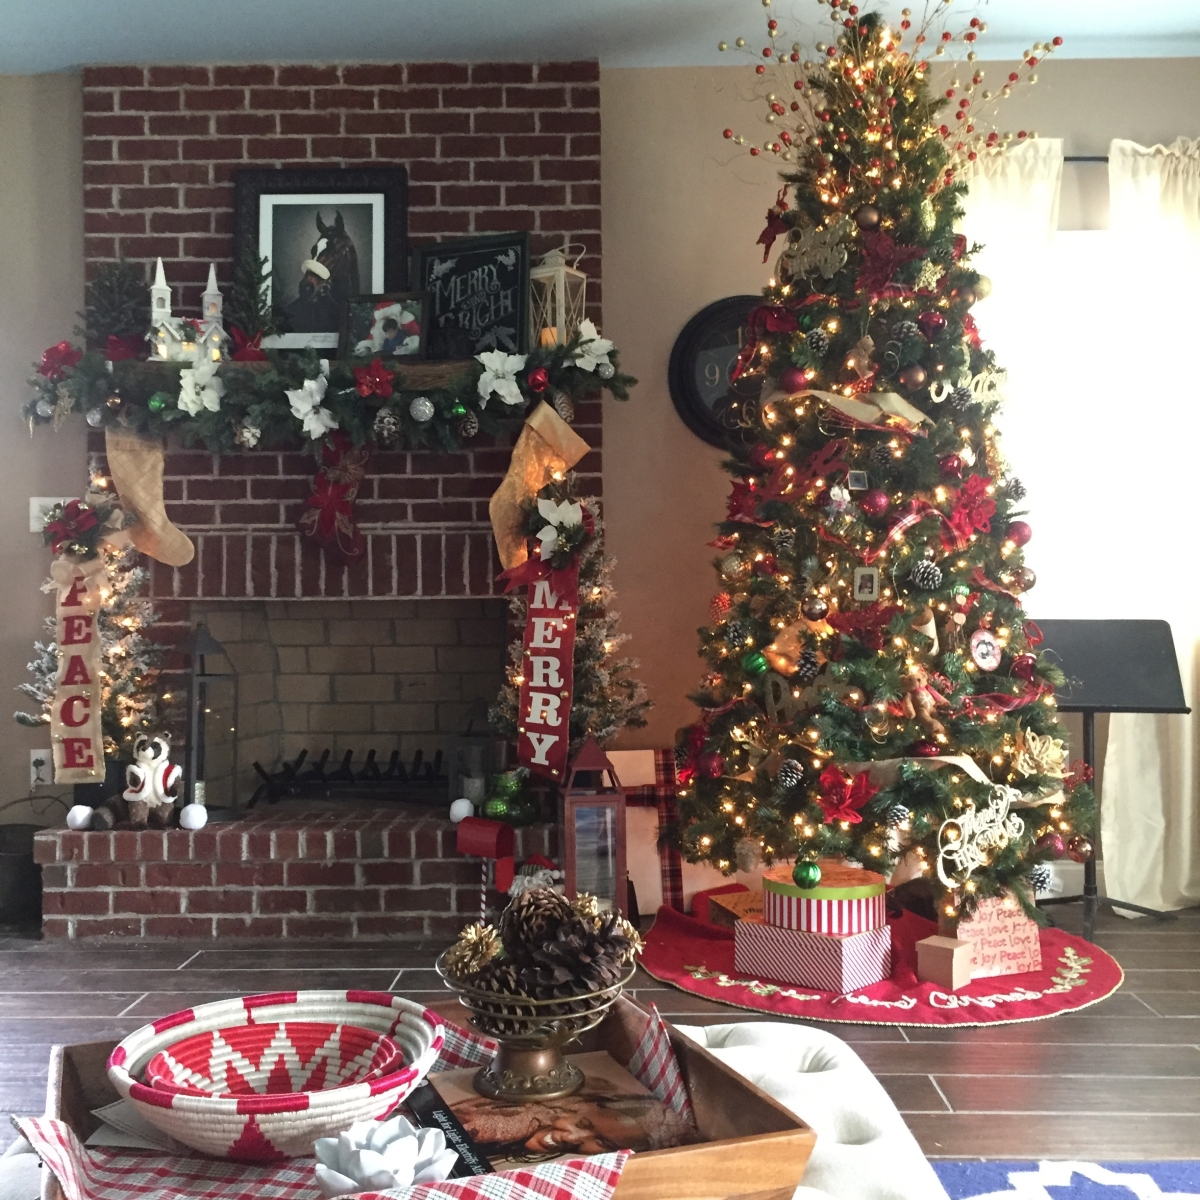 Budget Christmas Decorating Ideas: Budget Friendly Holiday Decorating Ideas